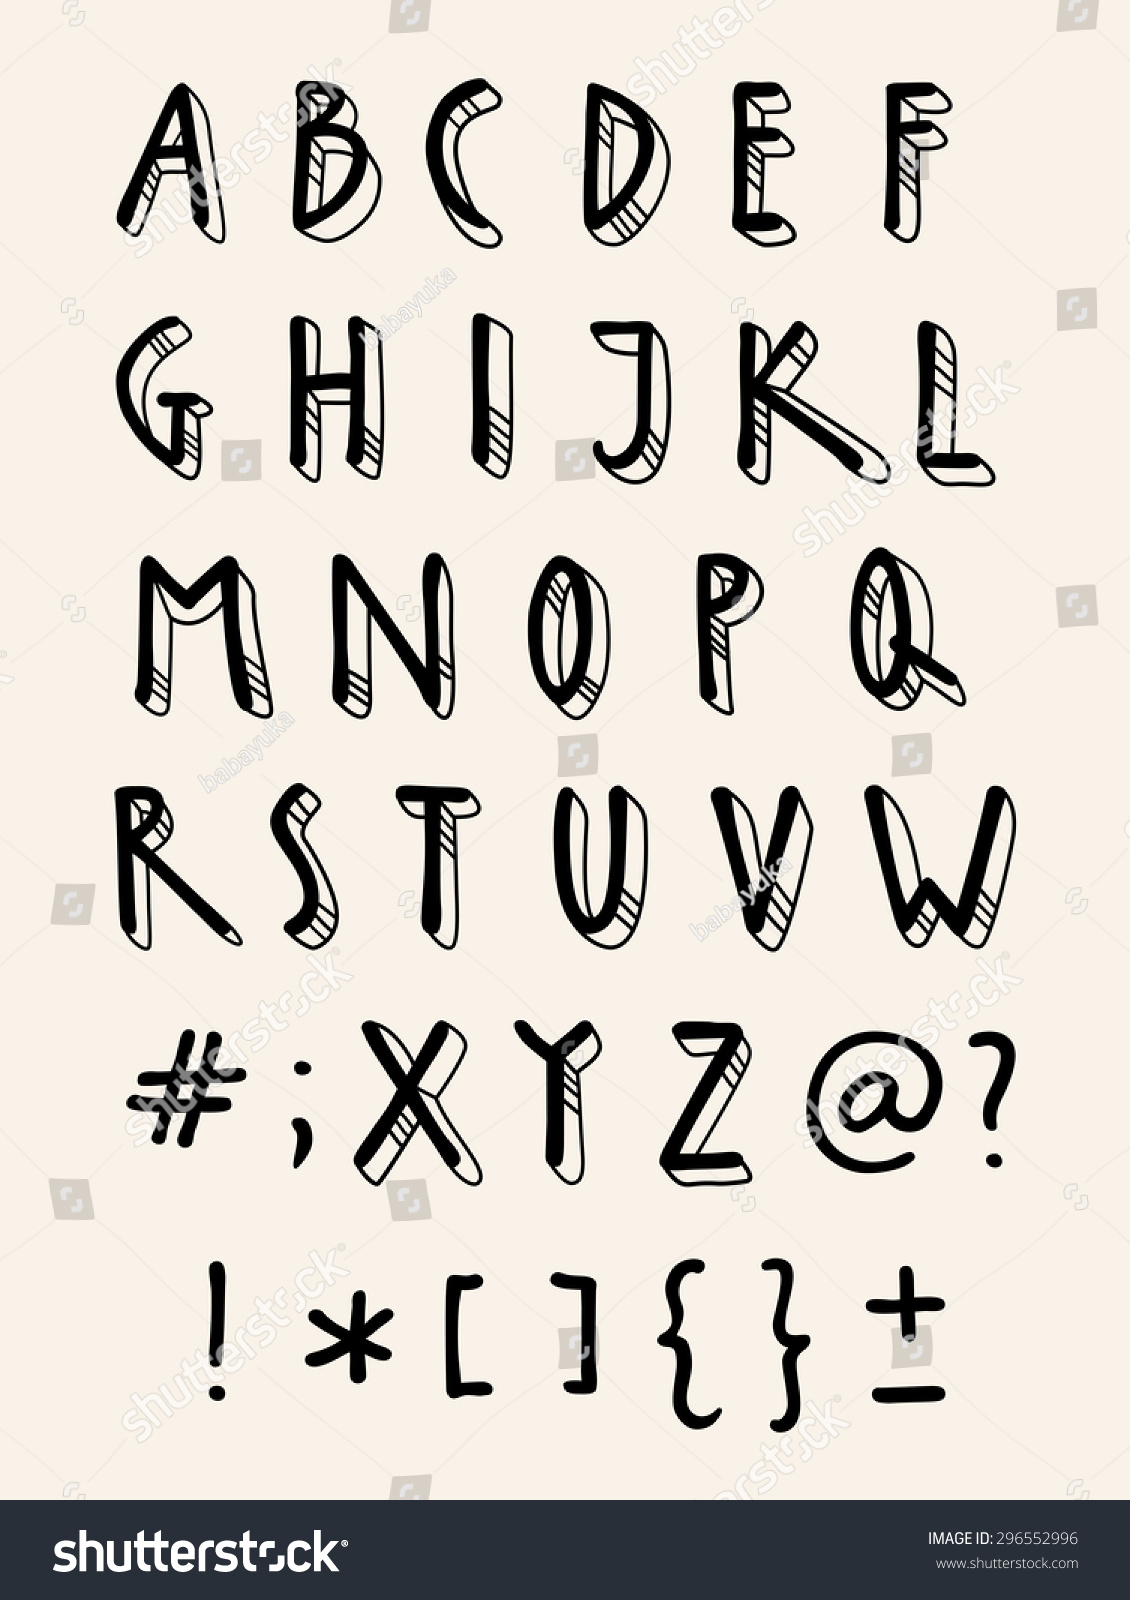 Printables A To Z Stylish Font Style a to z stylish font style precommunity printables worksheets vector handwriting doodle alphabet artistic hand drawn save